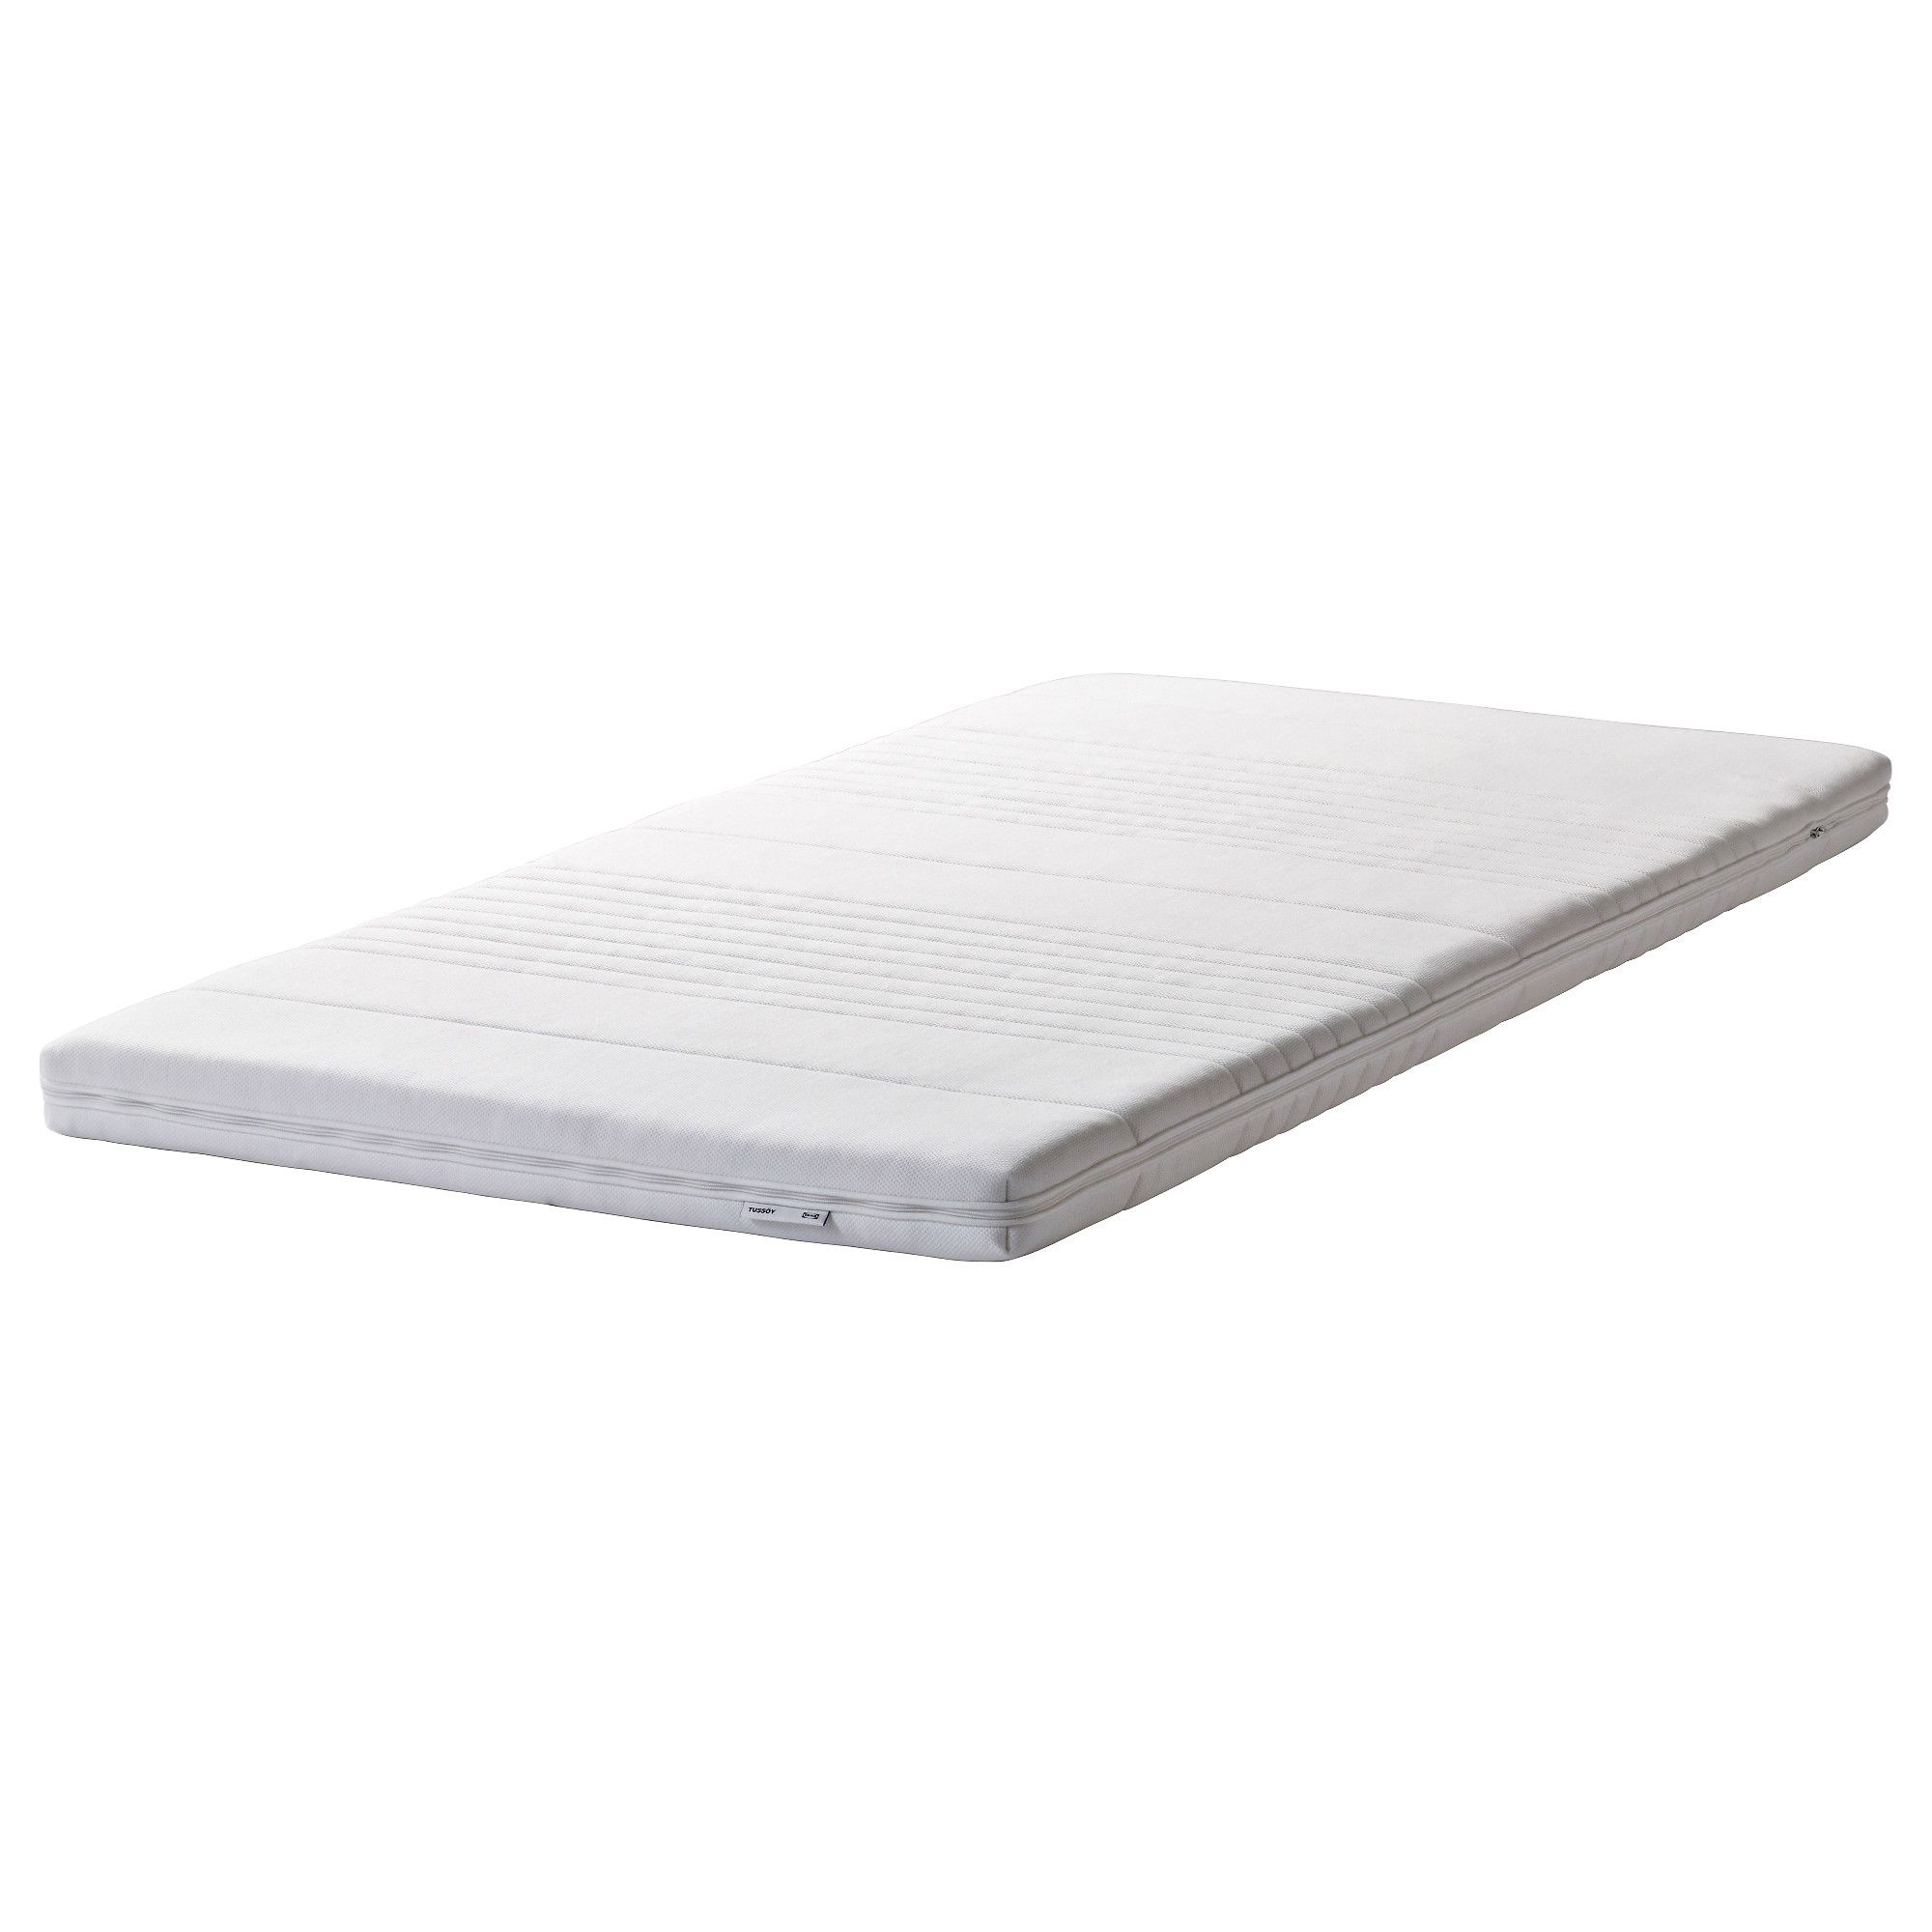 ikea tussa y mattress topper white products pinterest